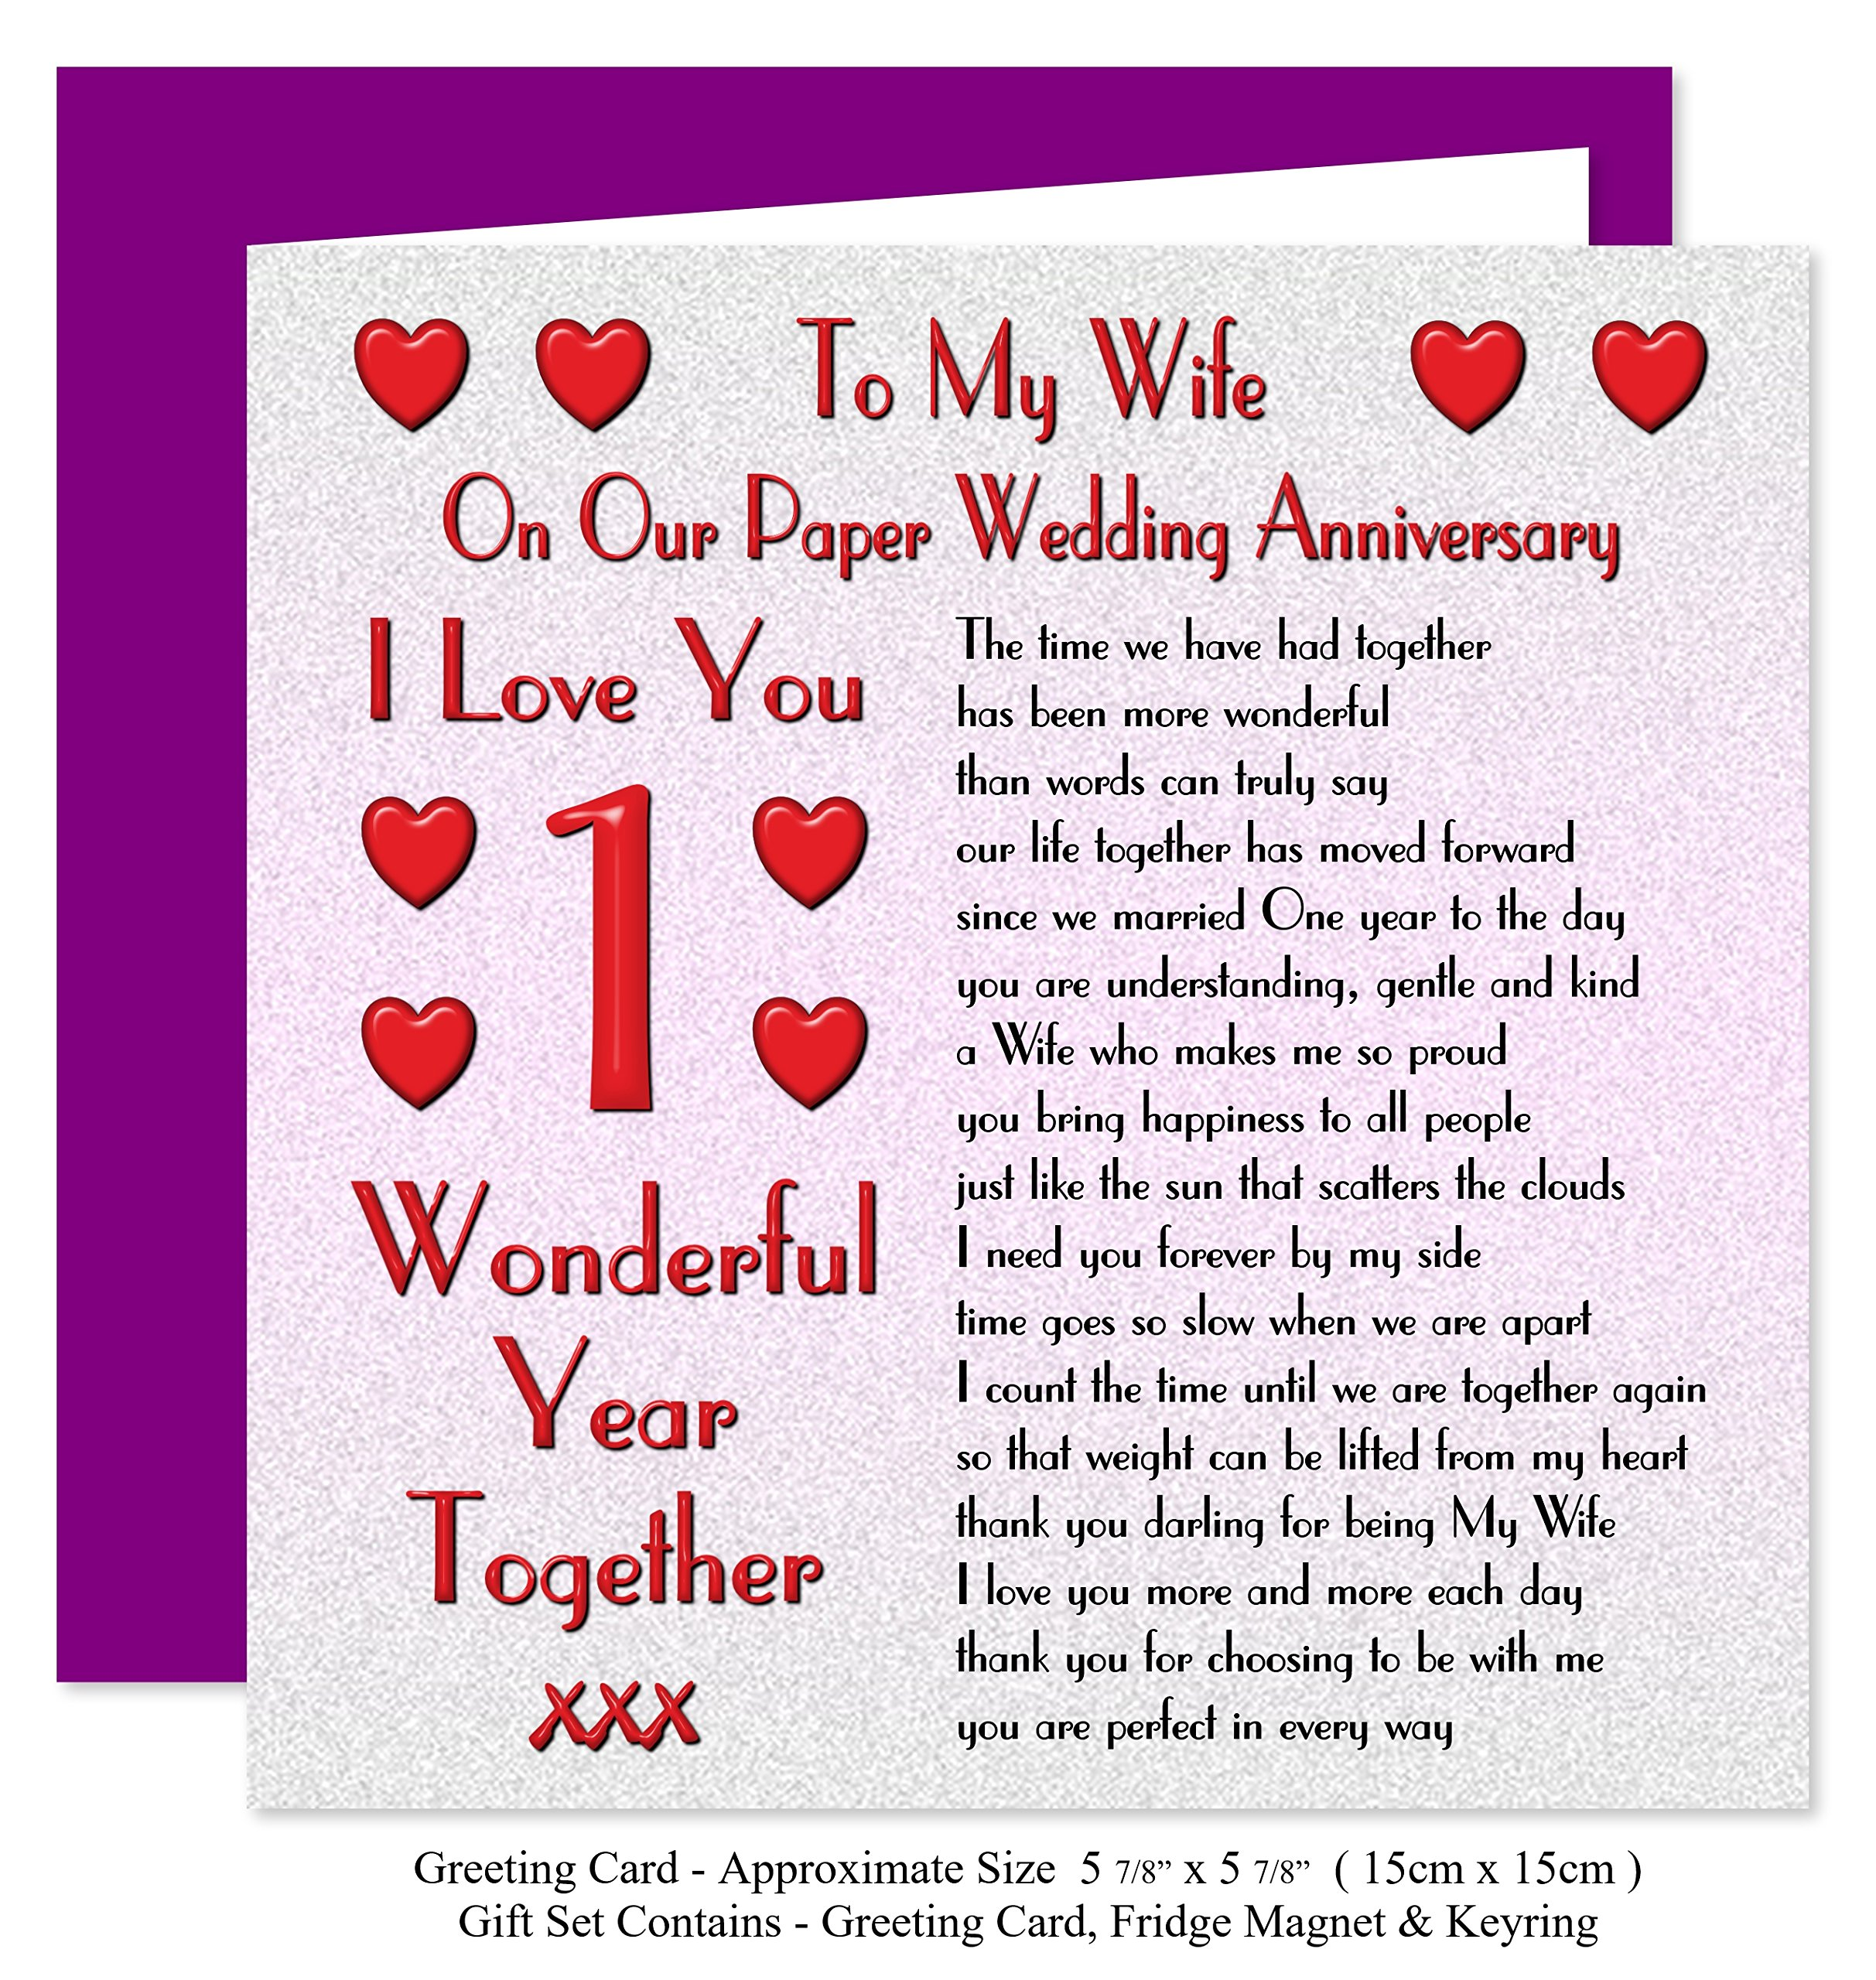 My Wife 1st Wedding Anniversary Gift Set Card Keyring Fridge Magnet Present On Our Paper Anniversary 1 Year Sentimental Verse I Love You Amazon Co Uk Office Products